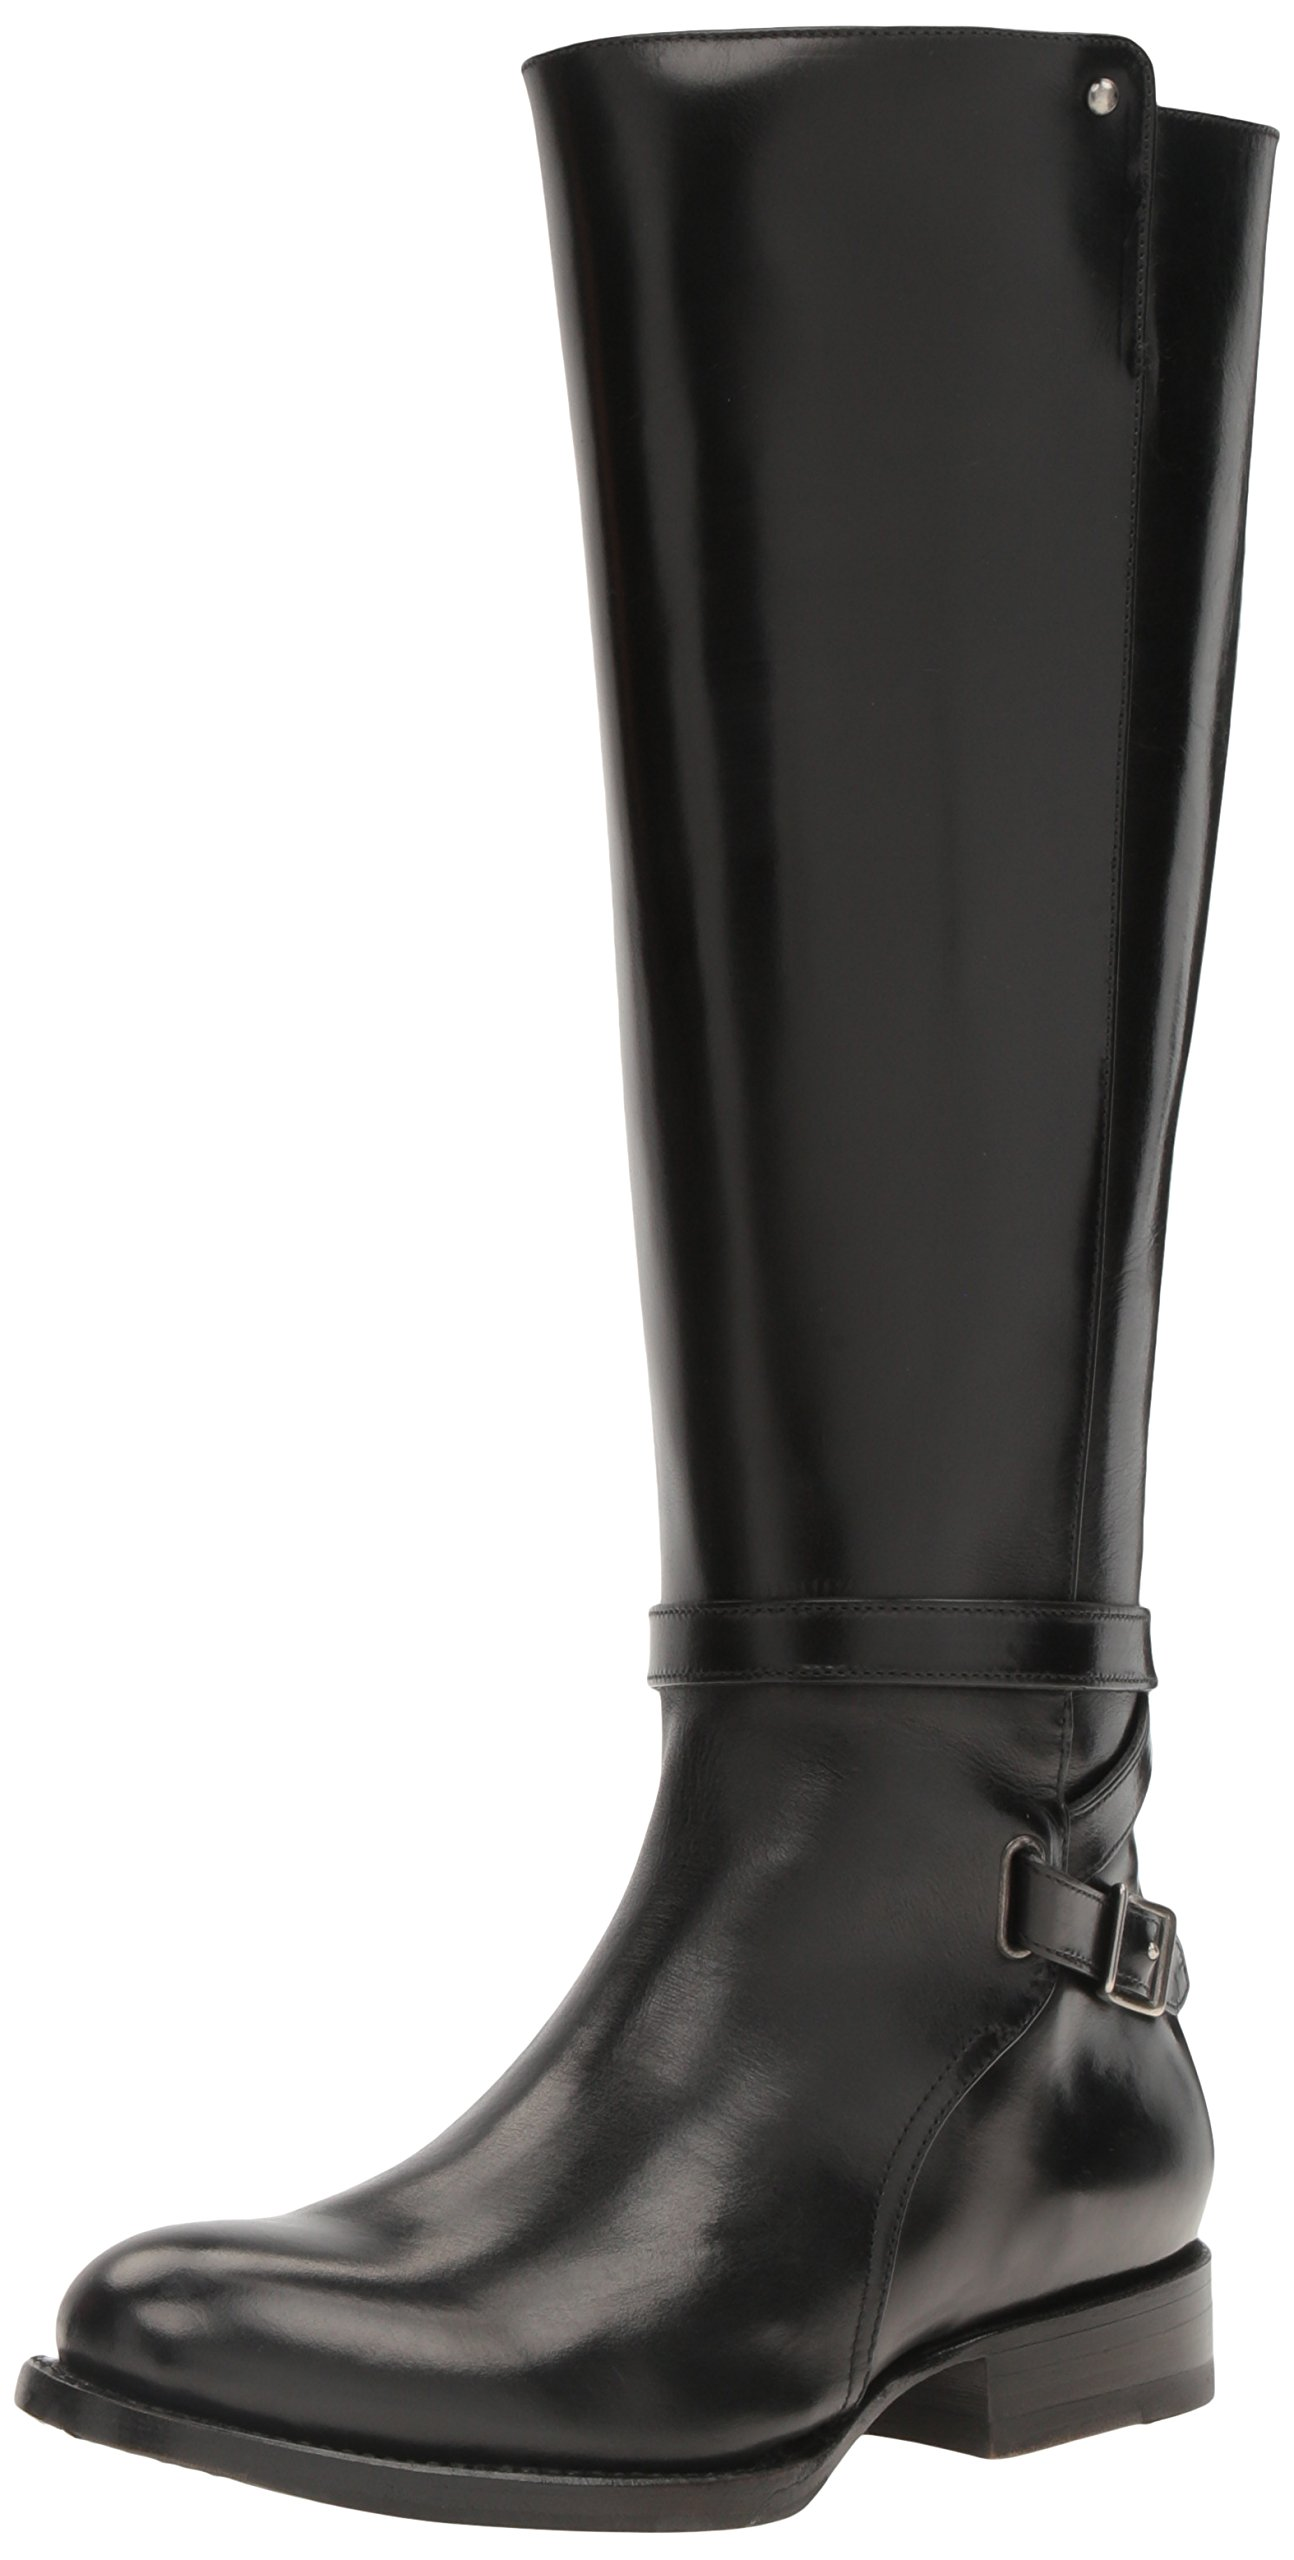 FRYE Women's Jordan Strap Tall Riding Boot, Black, 8 M US